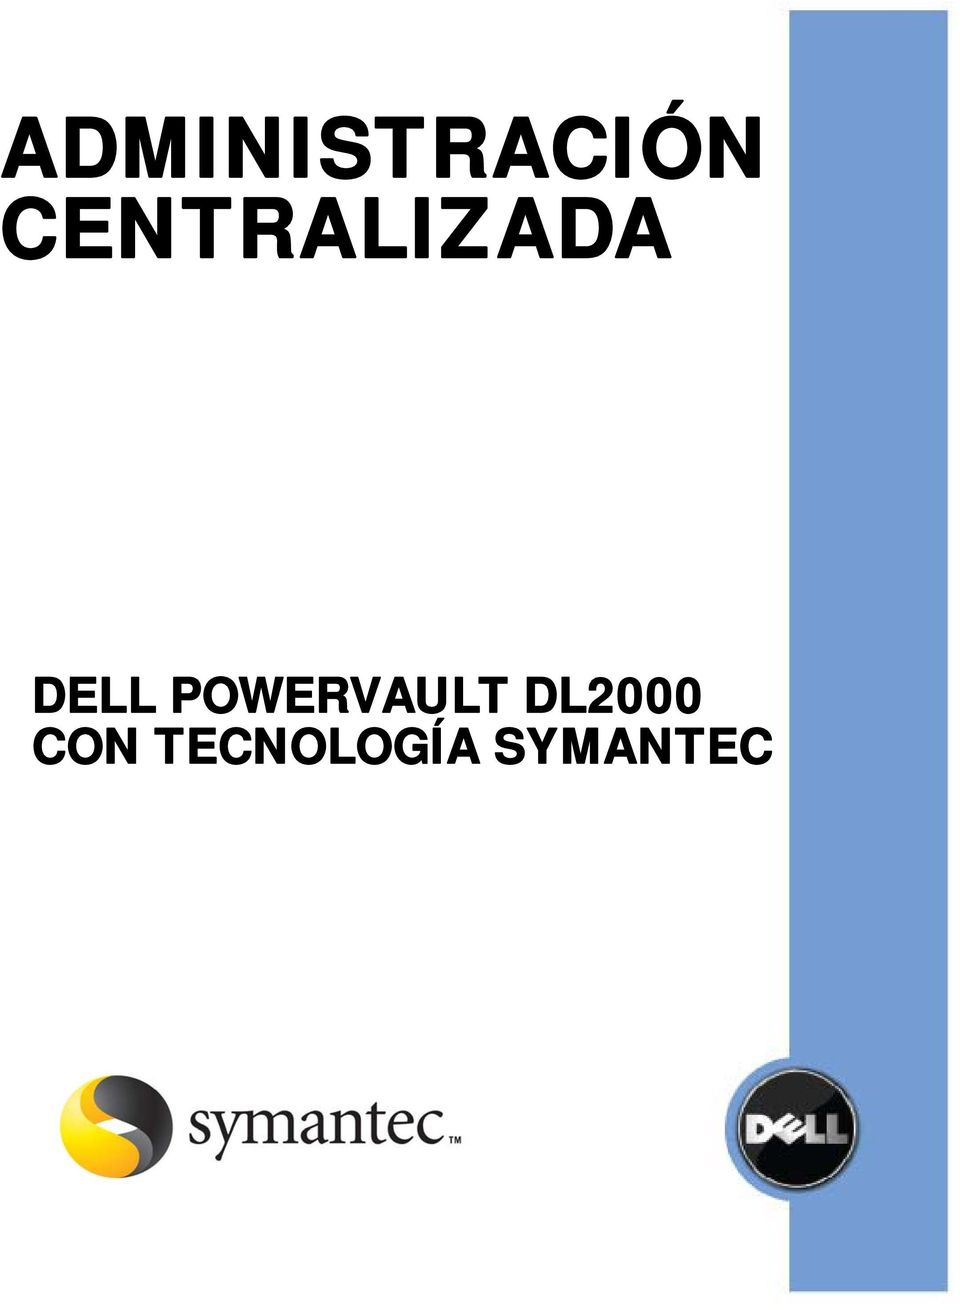 POWERVAULT DL2000